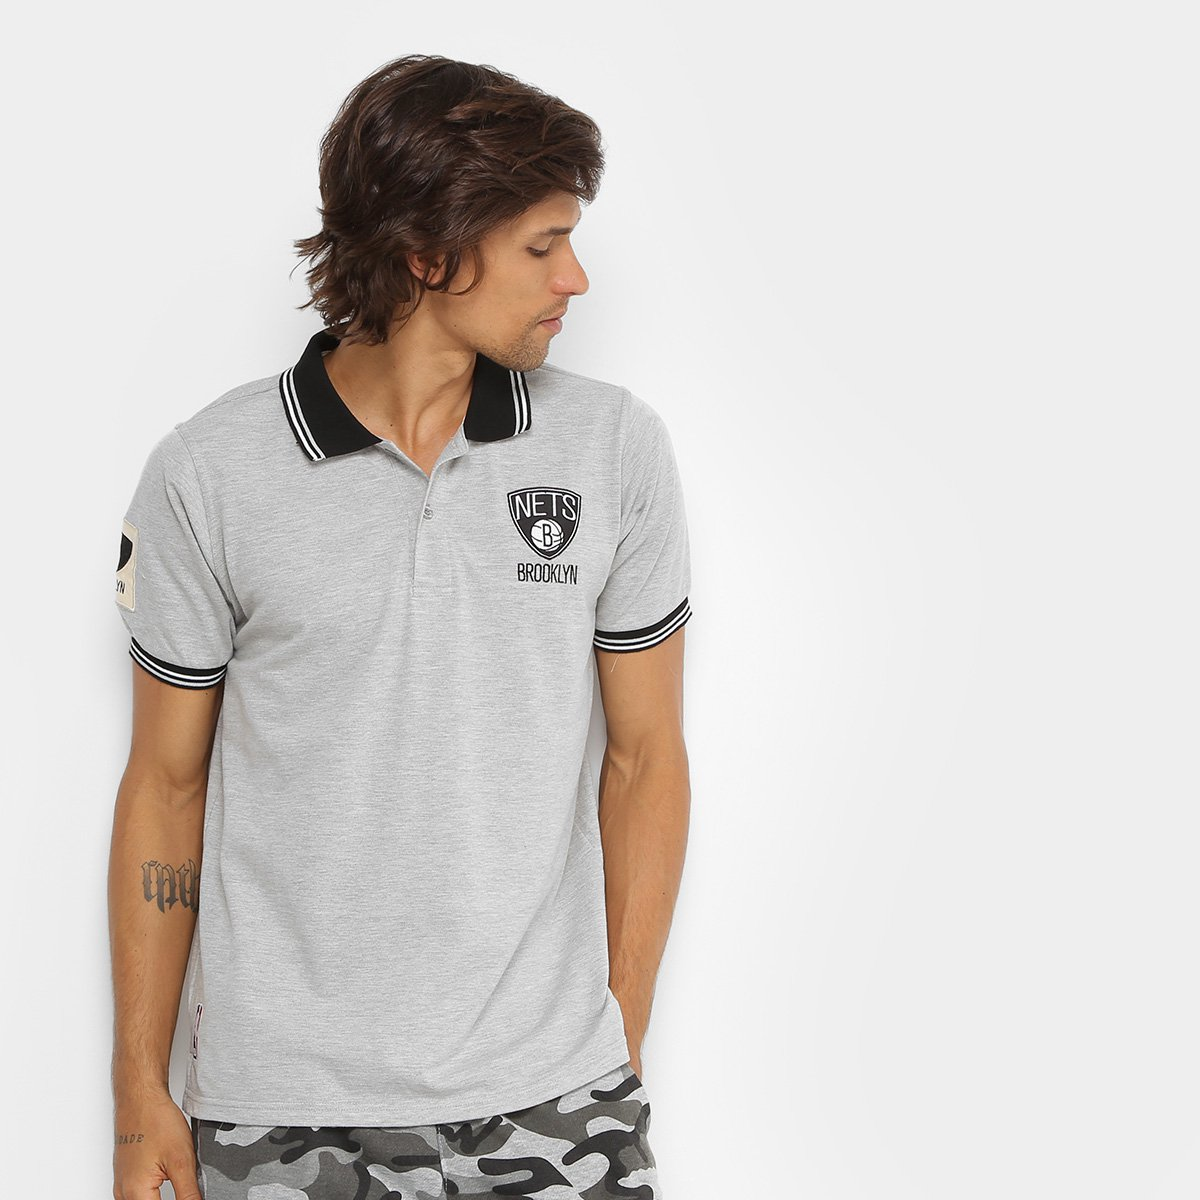 a39580629f Camisa Polo NBA Brooklyn Nets 17 Masculina - Mescla | Allianz Parque Shop